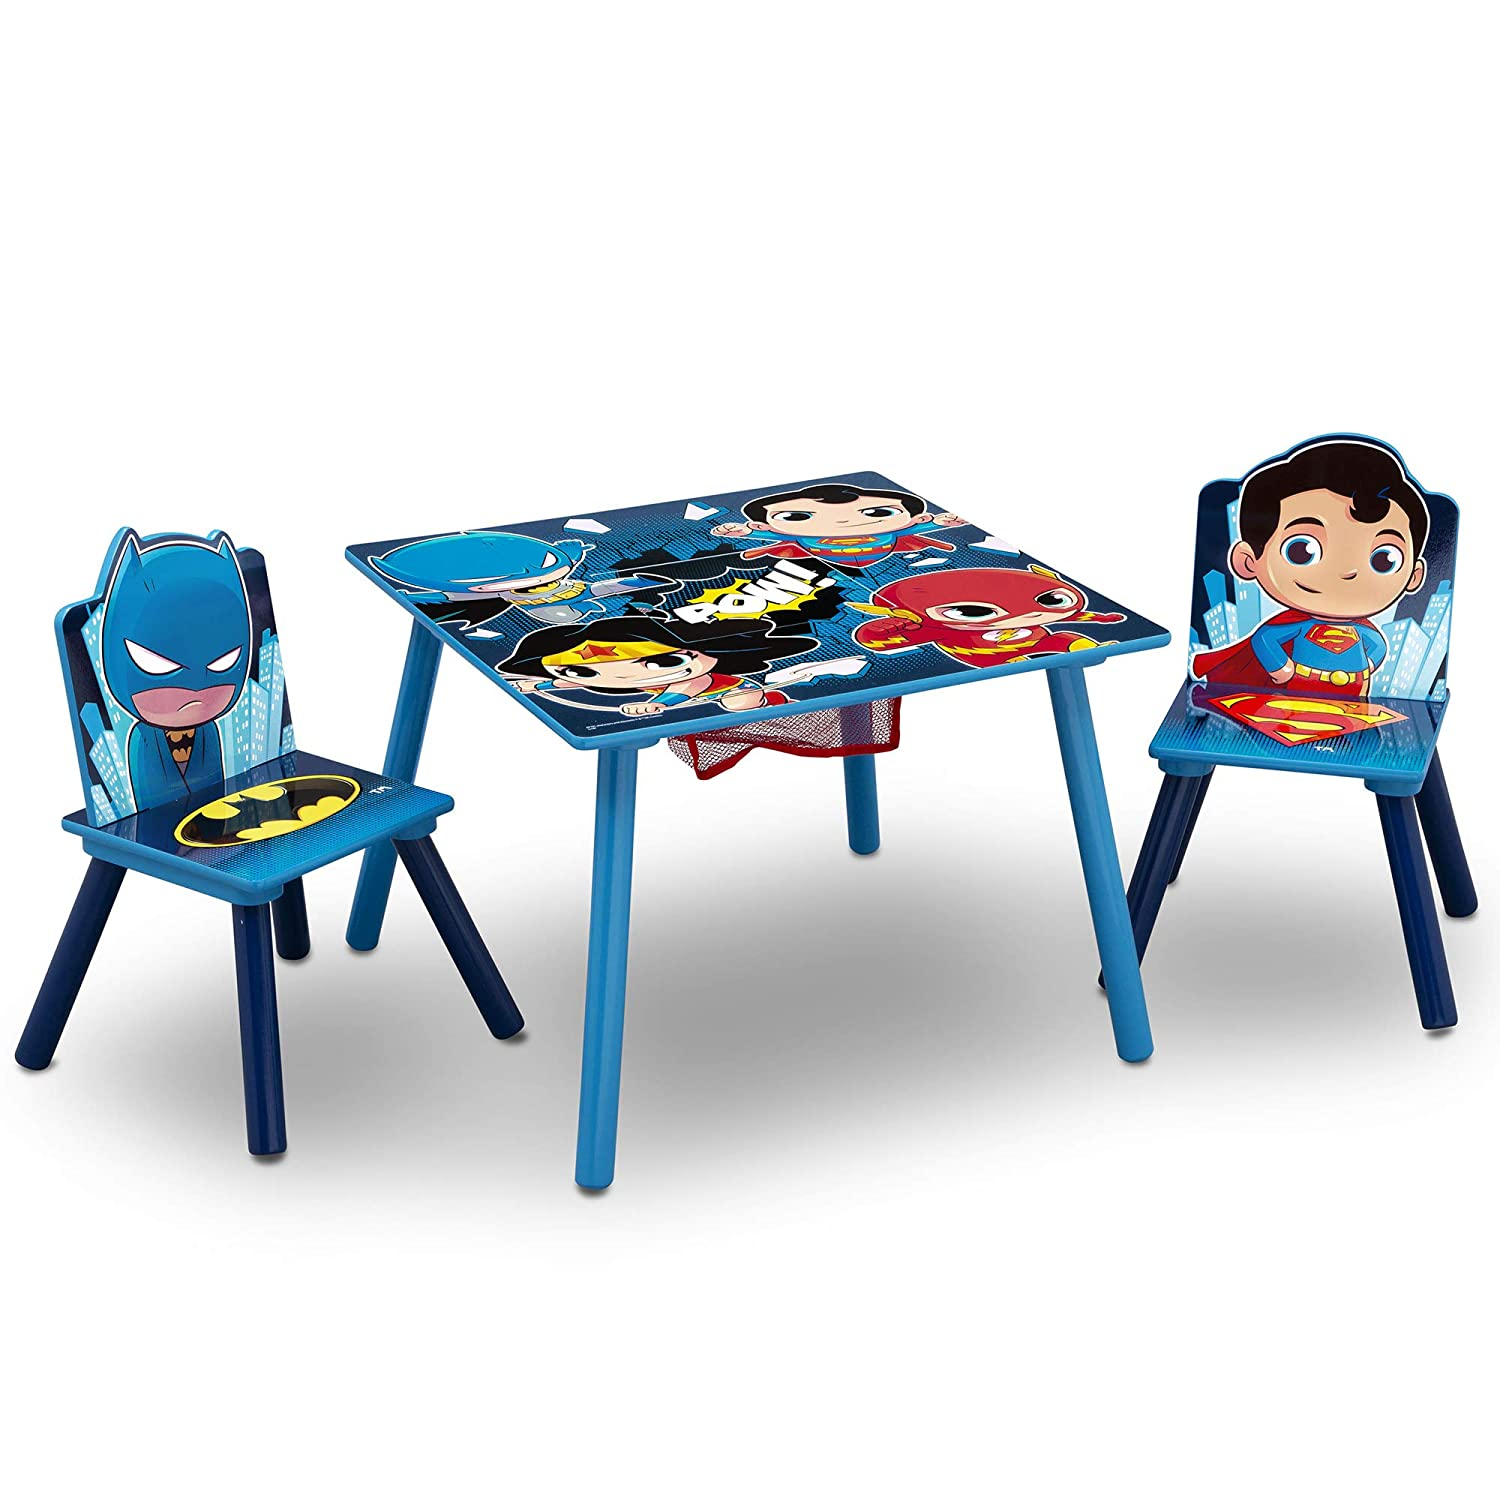 Kids Table And Chairs Play Set Toddler Children Activity